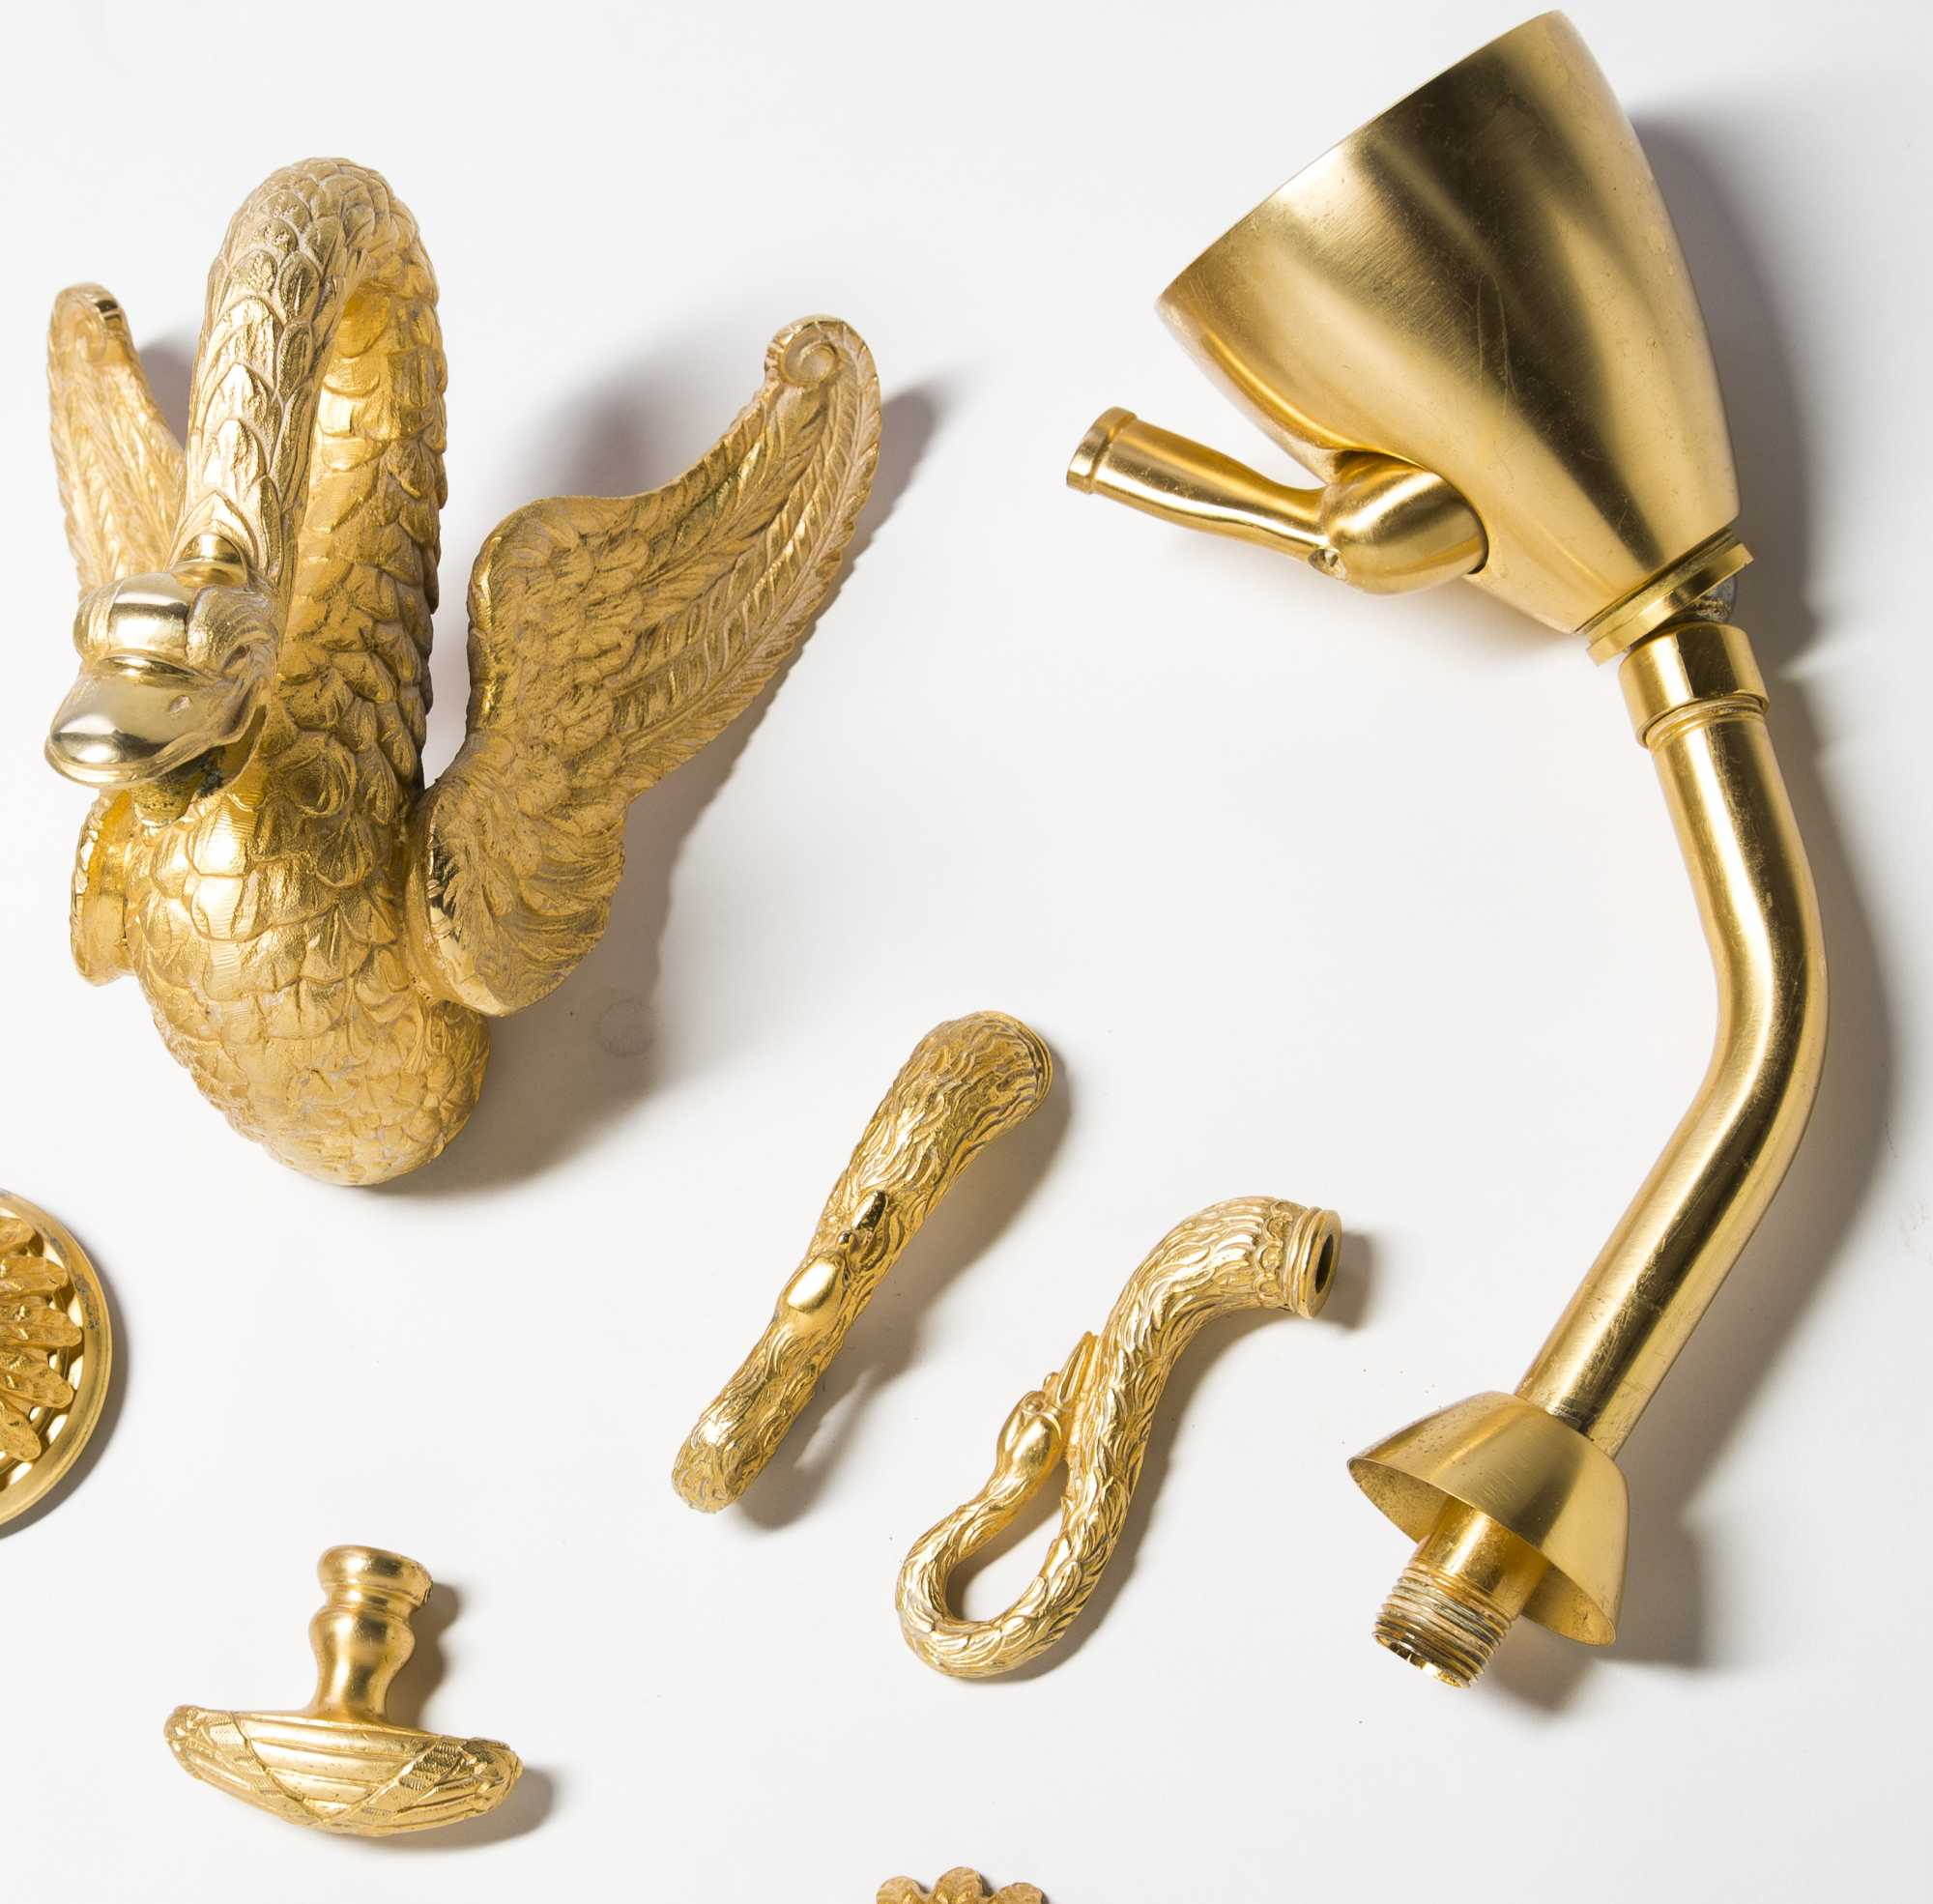 Sherle Wagner 24kt Gold Plated Swan Shower And Tub Fixtures